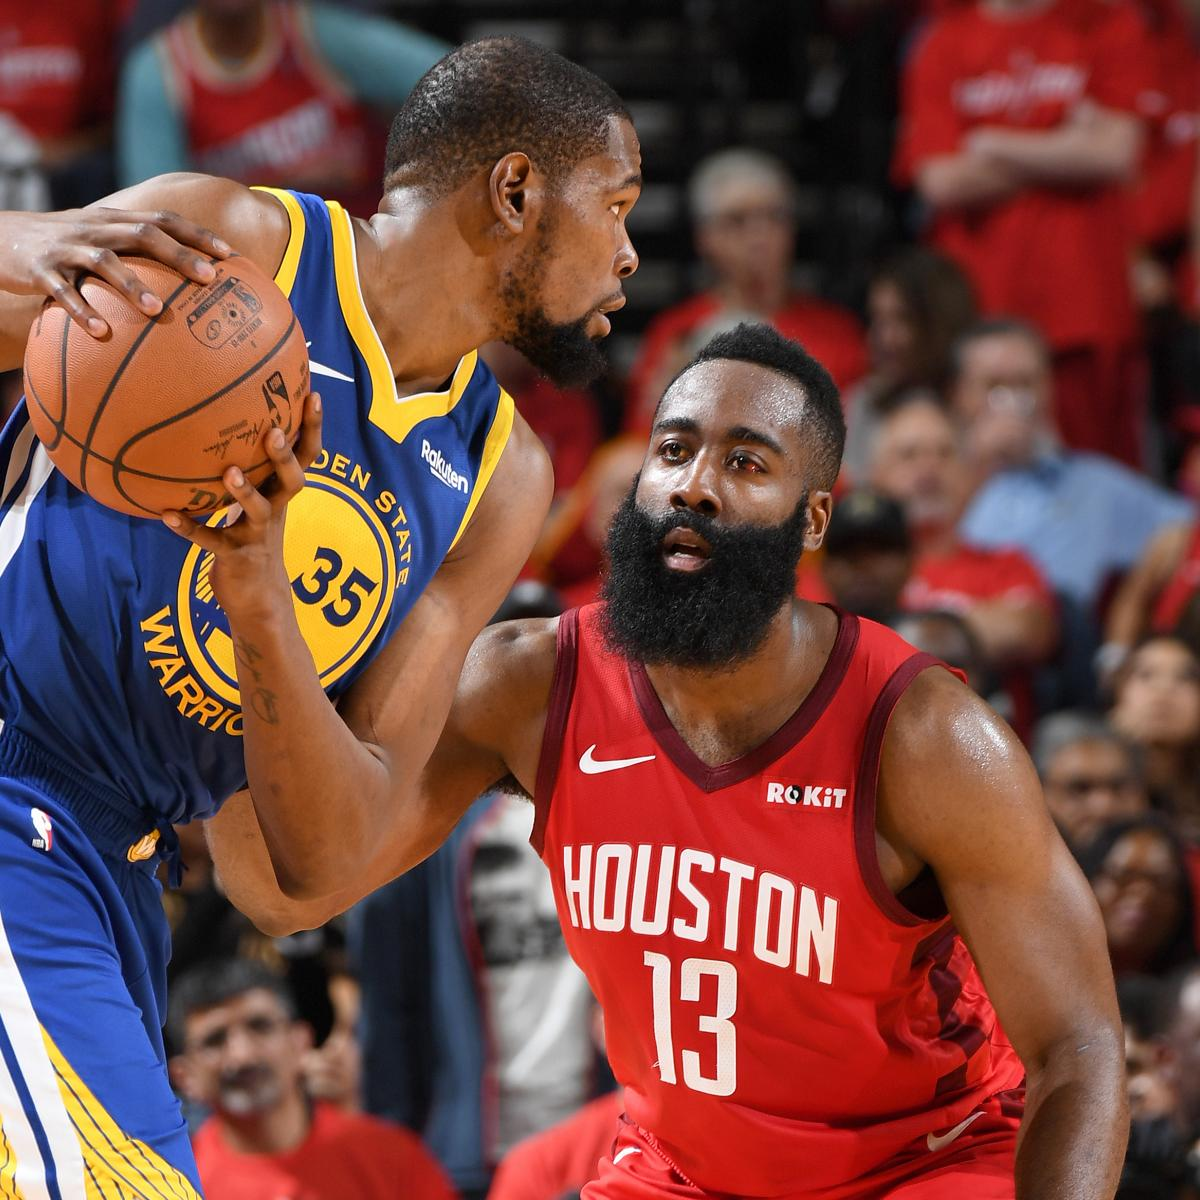 Rockets Vs Warriors Jan 3 2019: Highlights: Watch Kevin Durant, James Harden Duel In